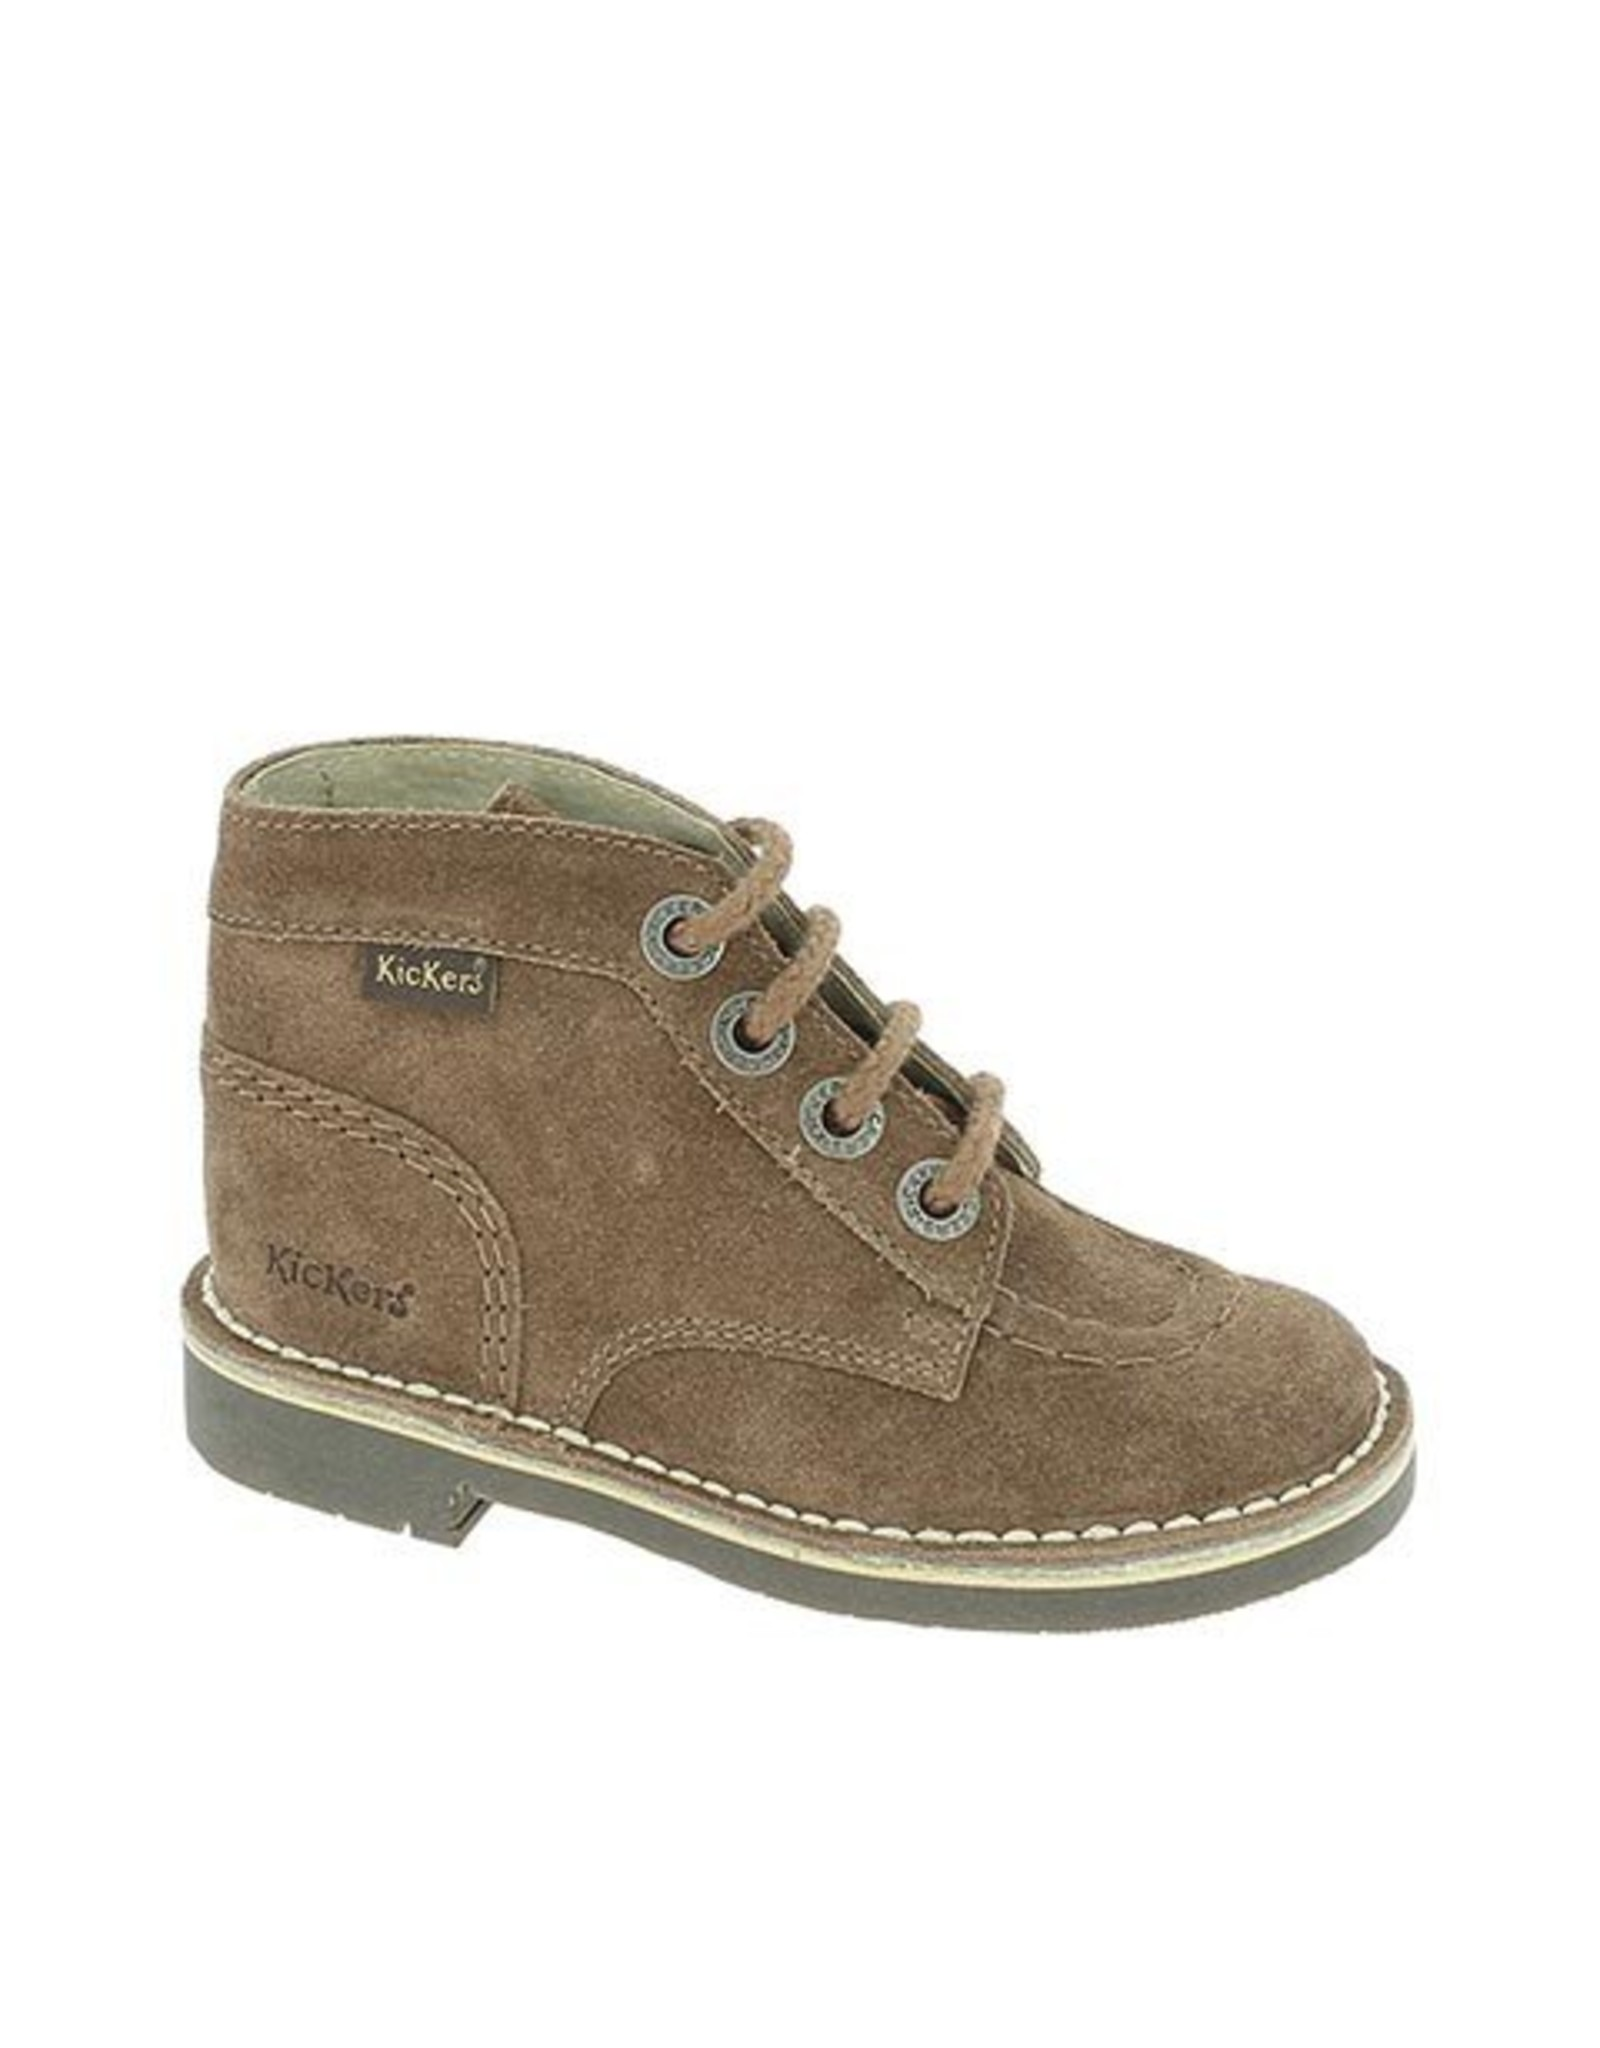 KICKERS KICK COD BROWN LIGHT K1486BR